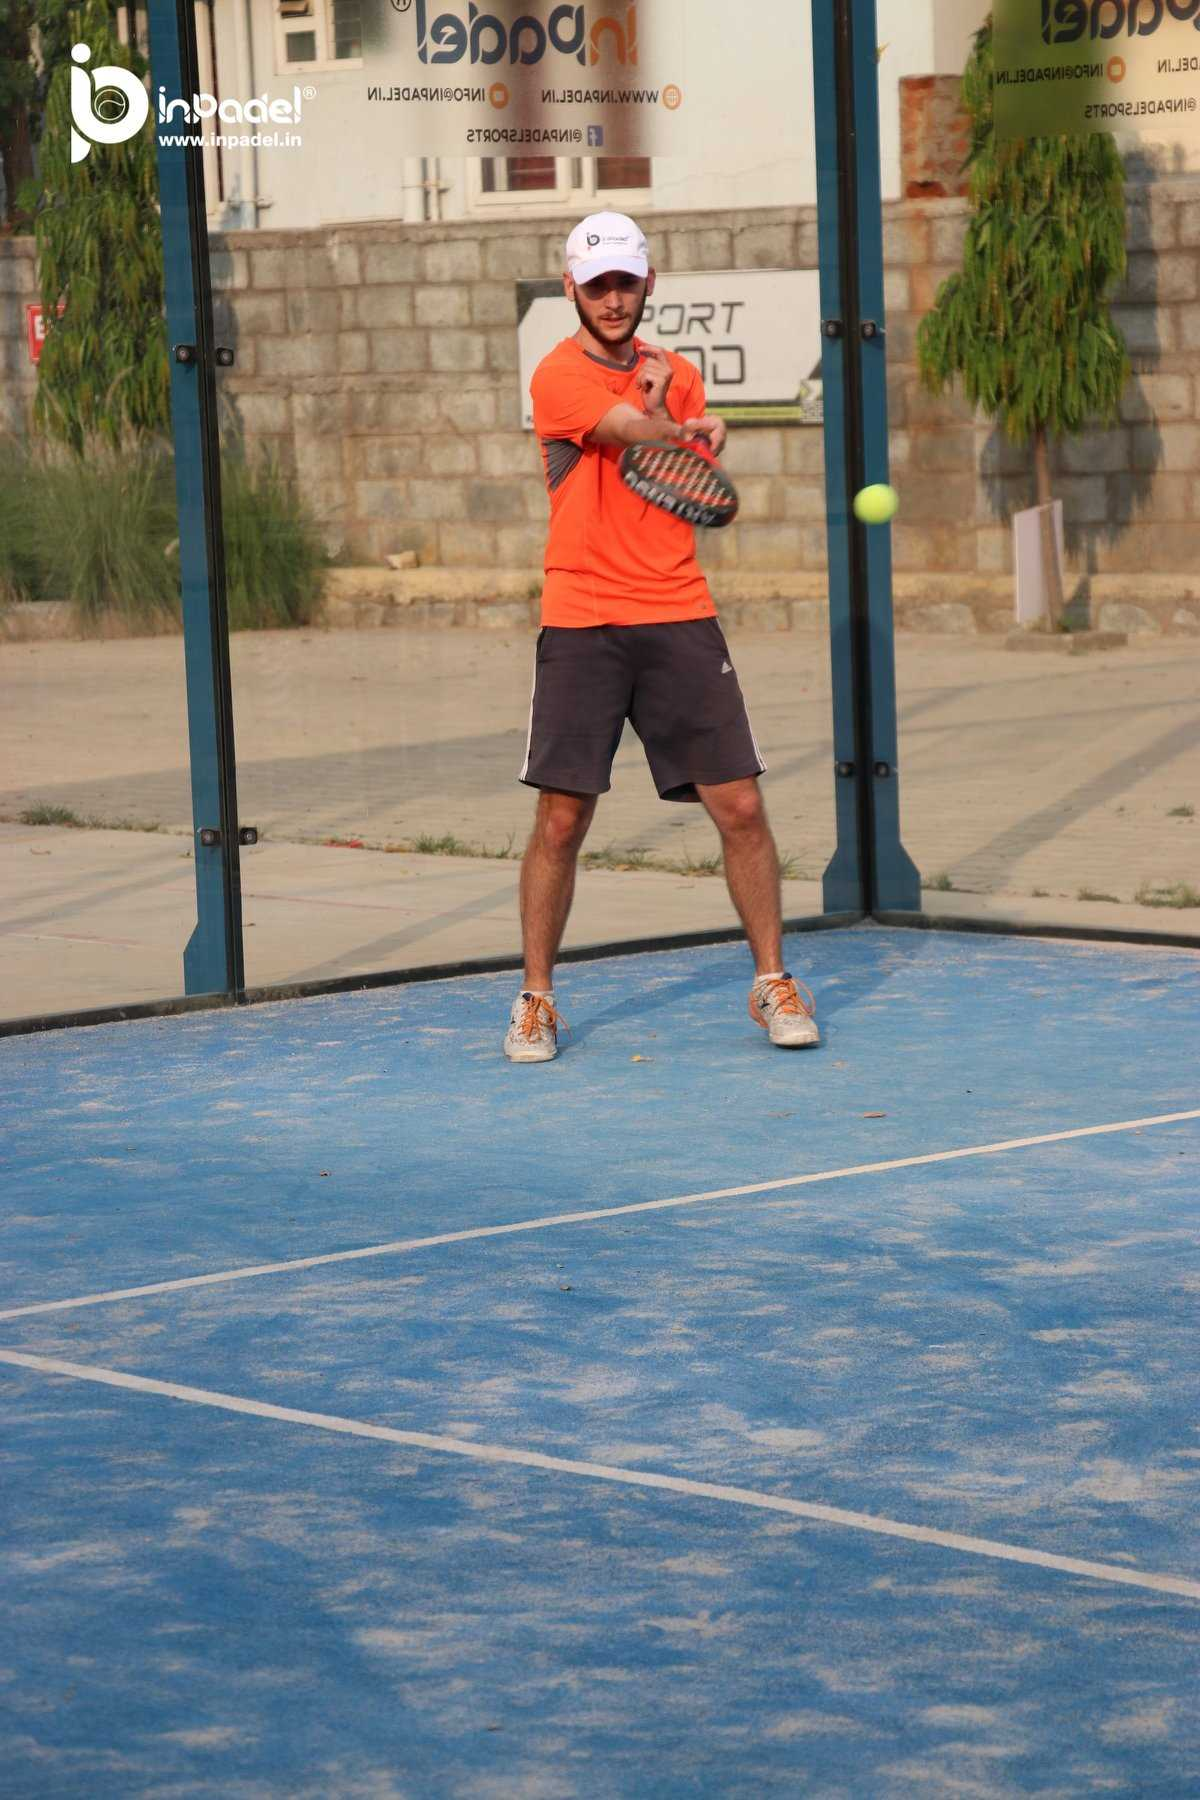 InPadel 1Yr Celebration of Padel in INDIA - Padel - Padel India (91)